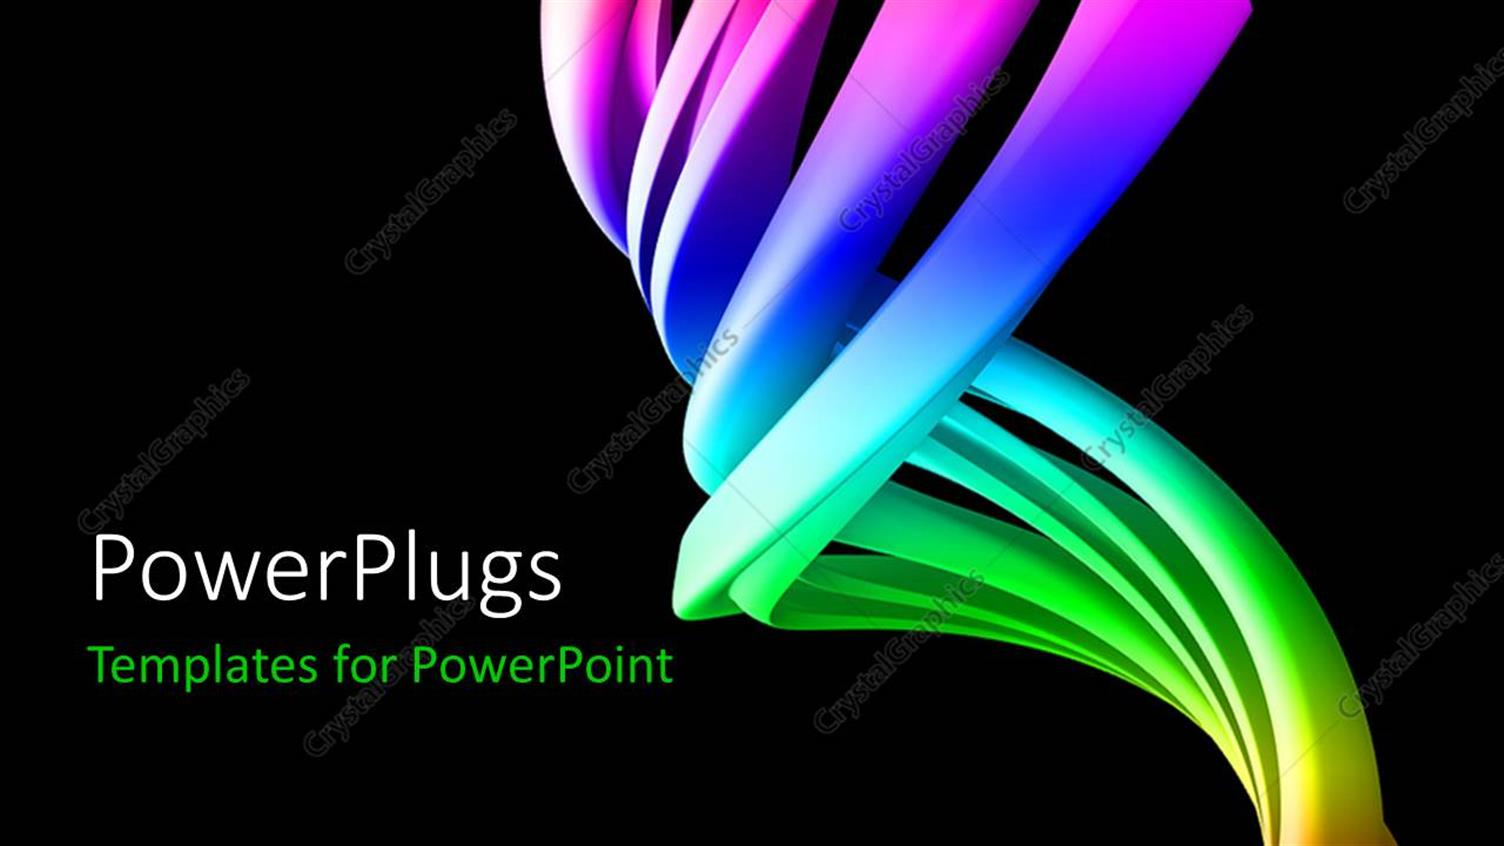 PowerPoint Template Displaying Colorful Abstract 3D Curves with Black Color